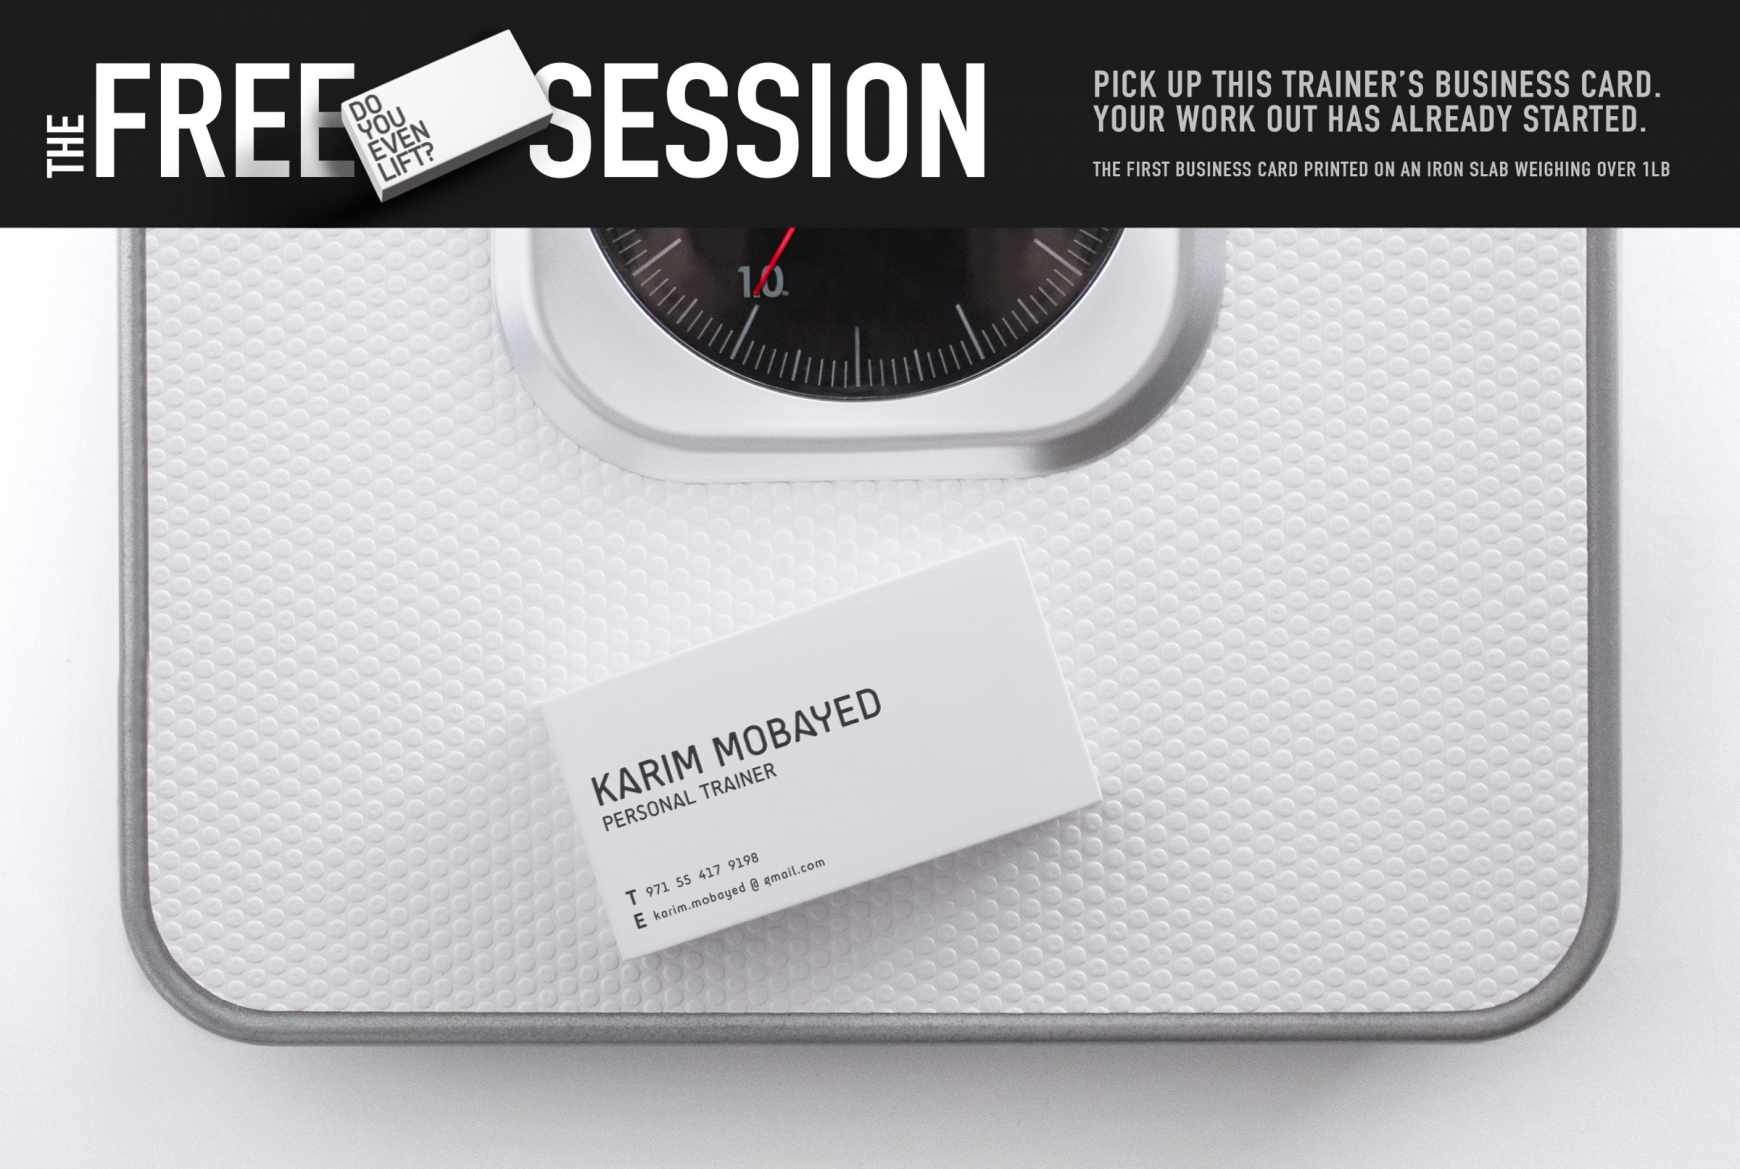 Business cards of the week paperspecs personal trainer business card colourmoves